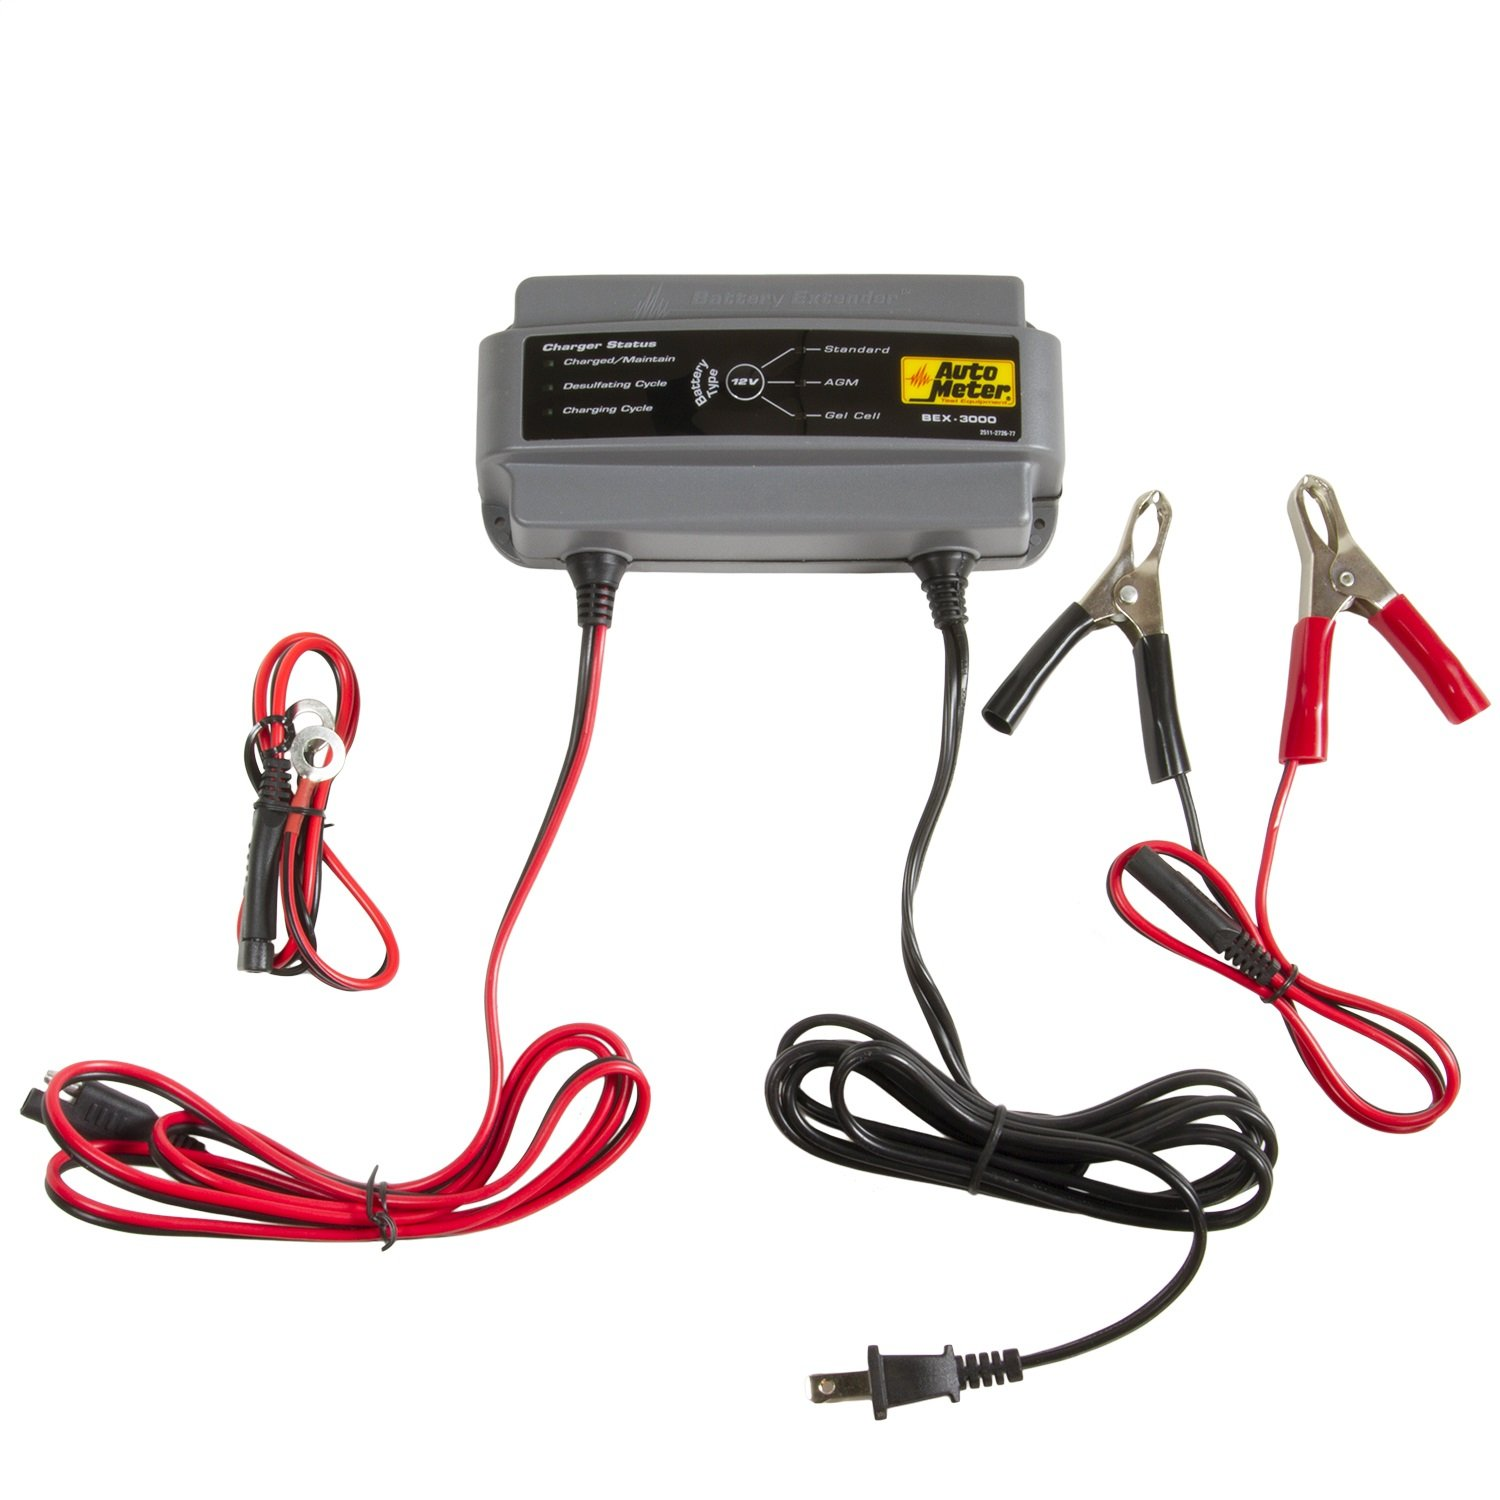 Auto Meter BEX- 3000 BEX Series 3.0 Amp Battery Charger/Maintainer